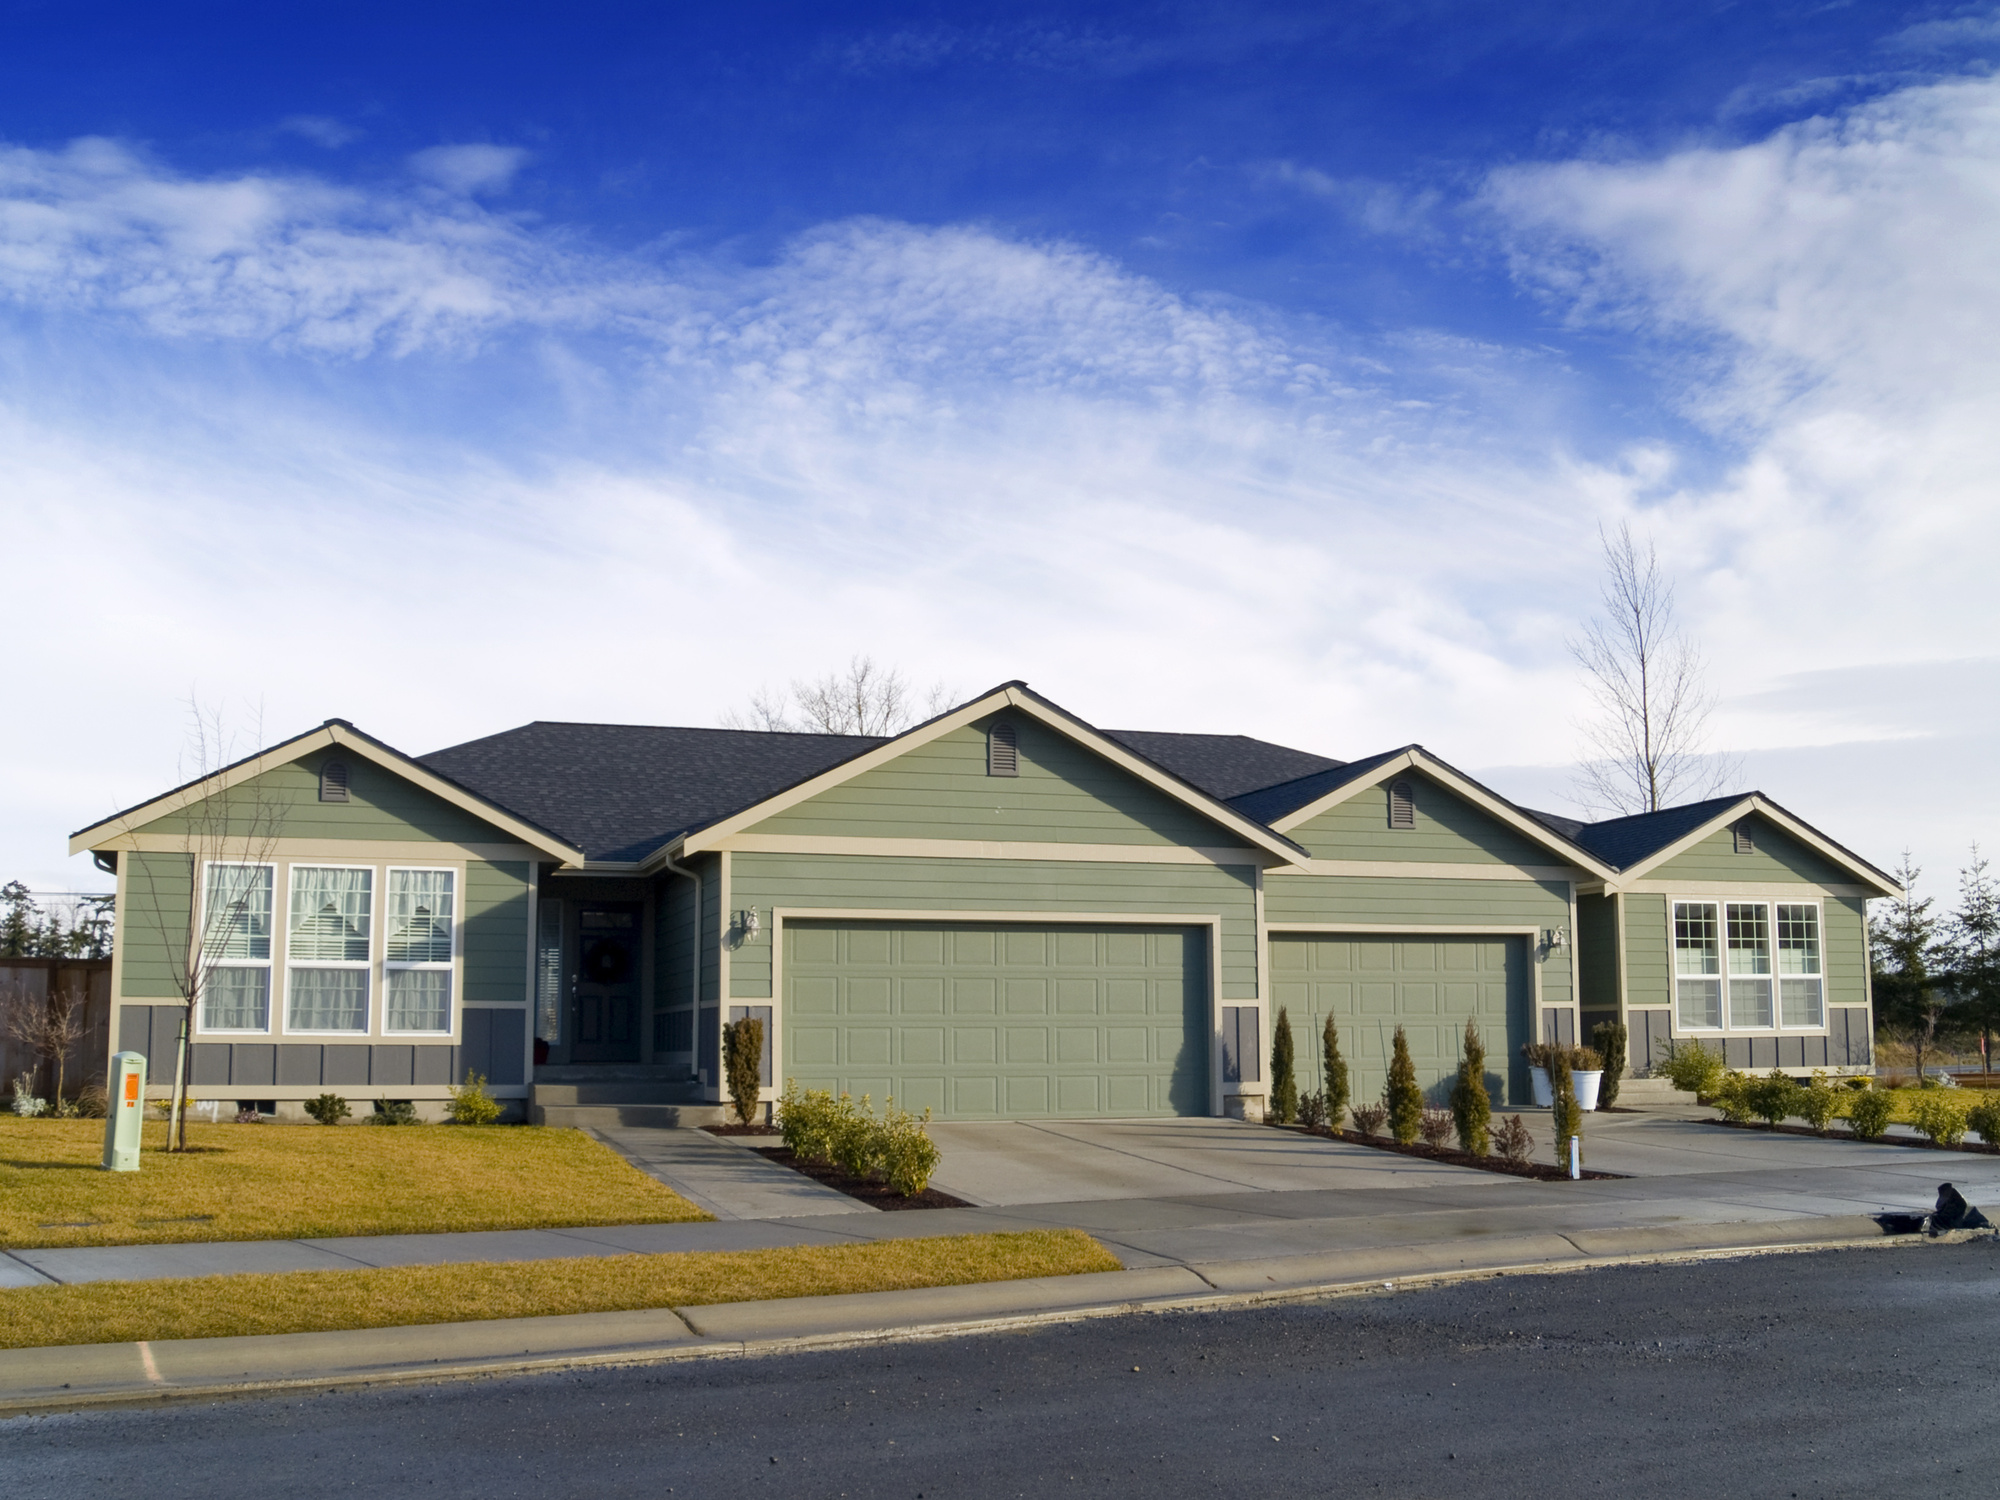 10 Comfortable Reasons to Purchase a Dual Occupancy Home in Australia